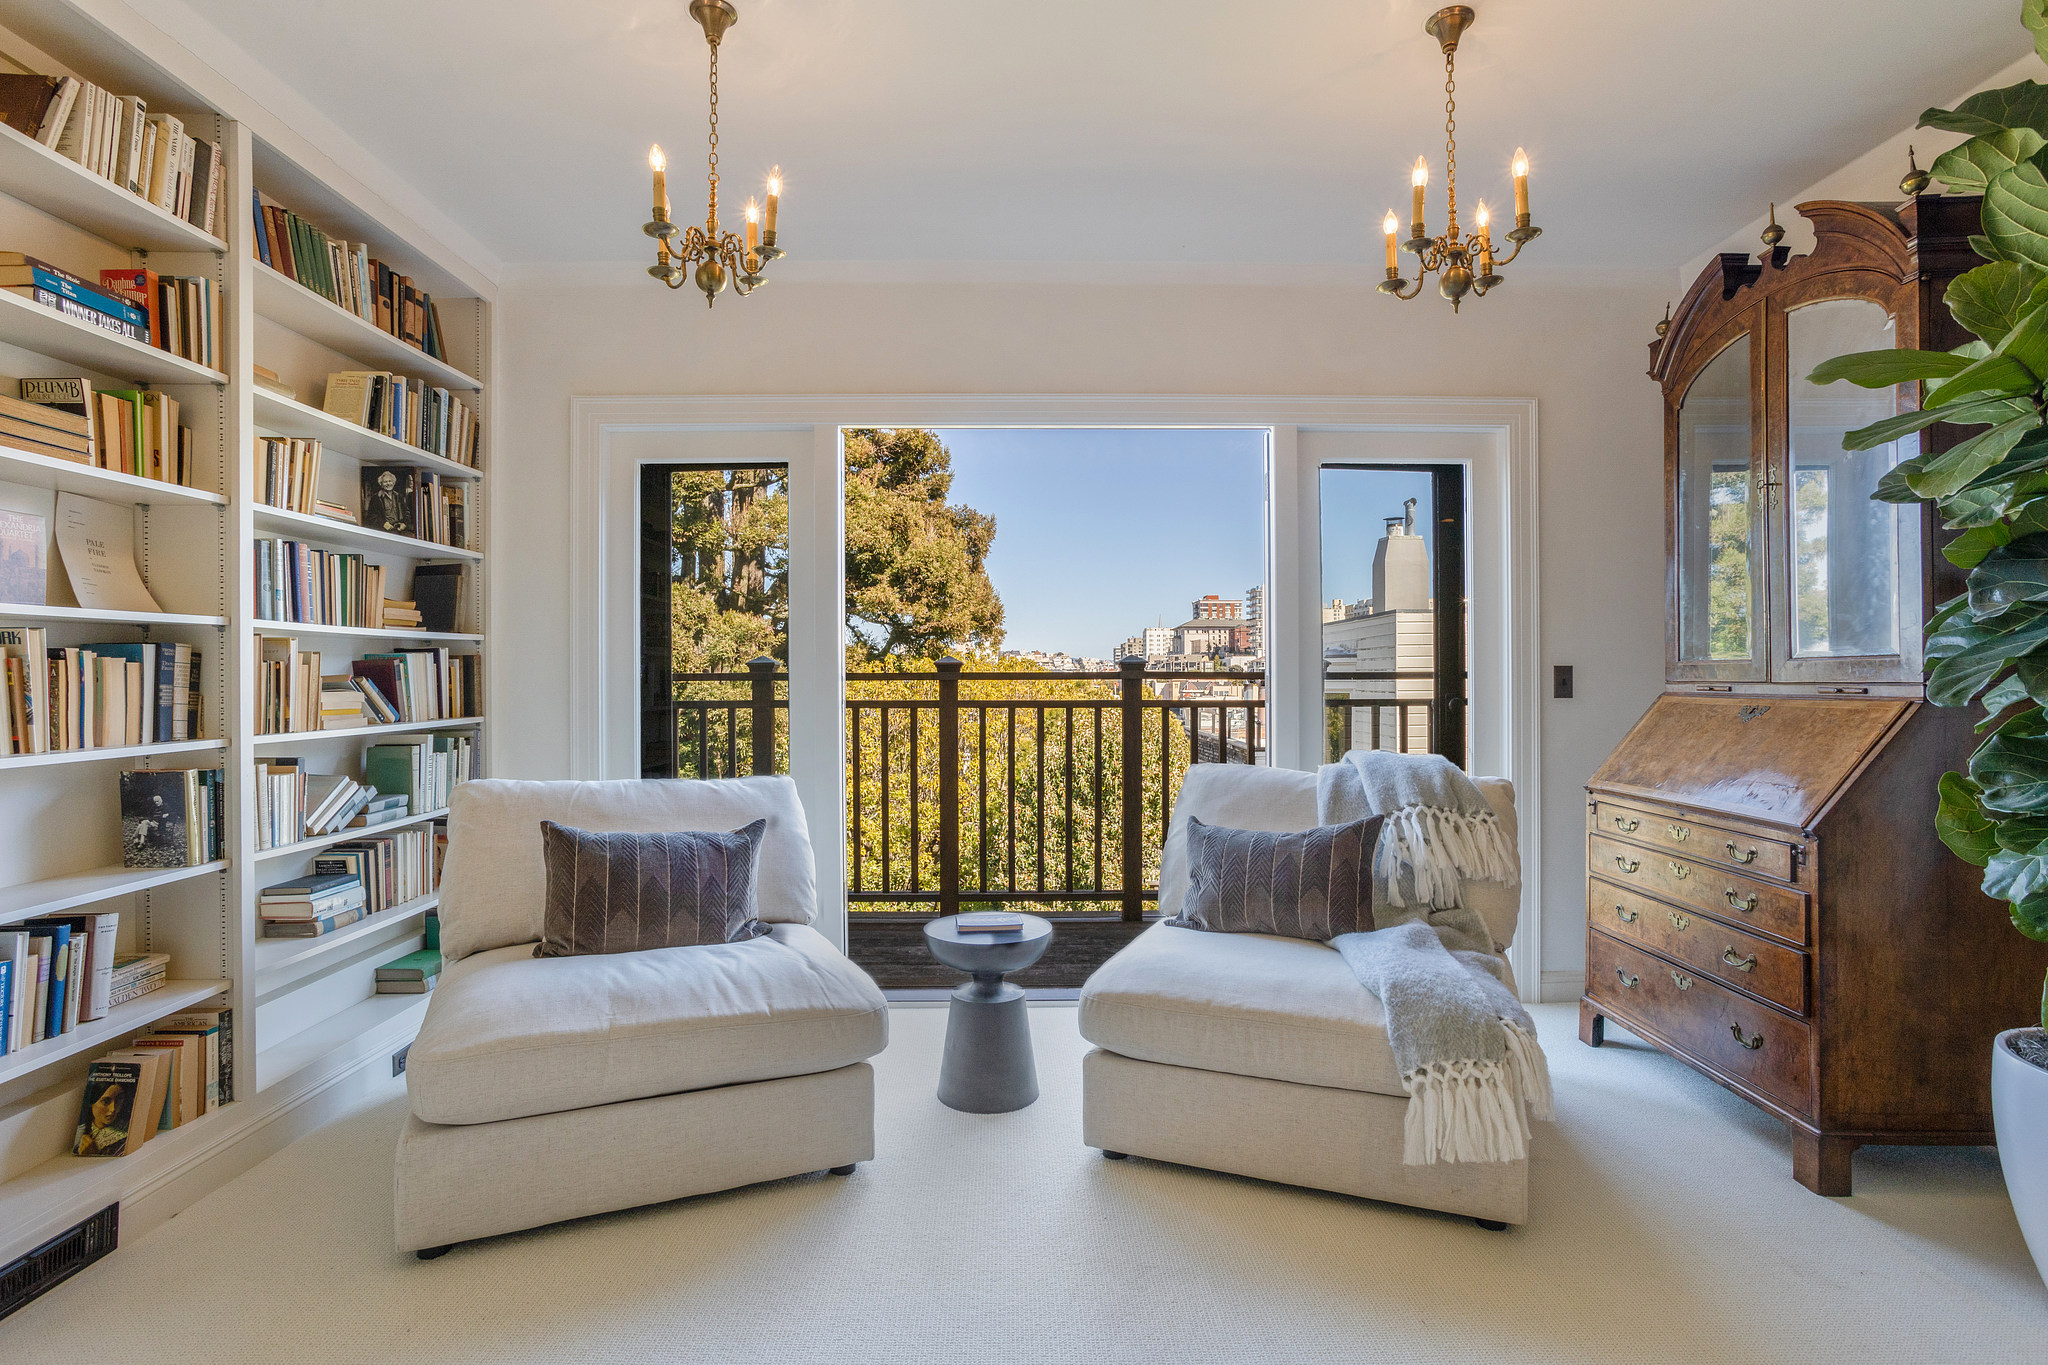 The primary bedroom features astep-out balcony with Pac Heights views.